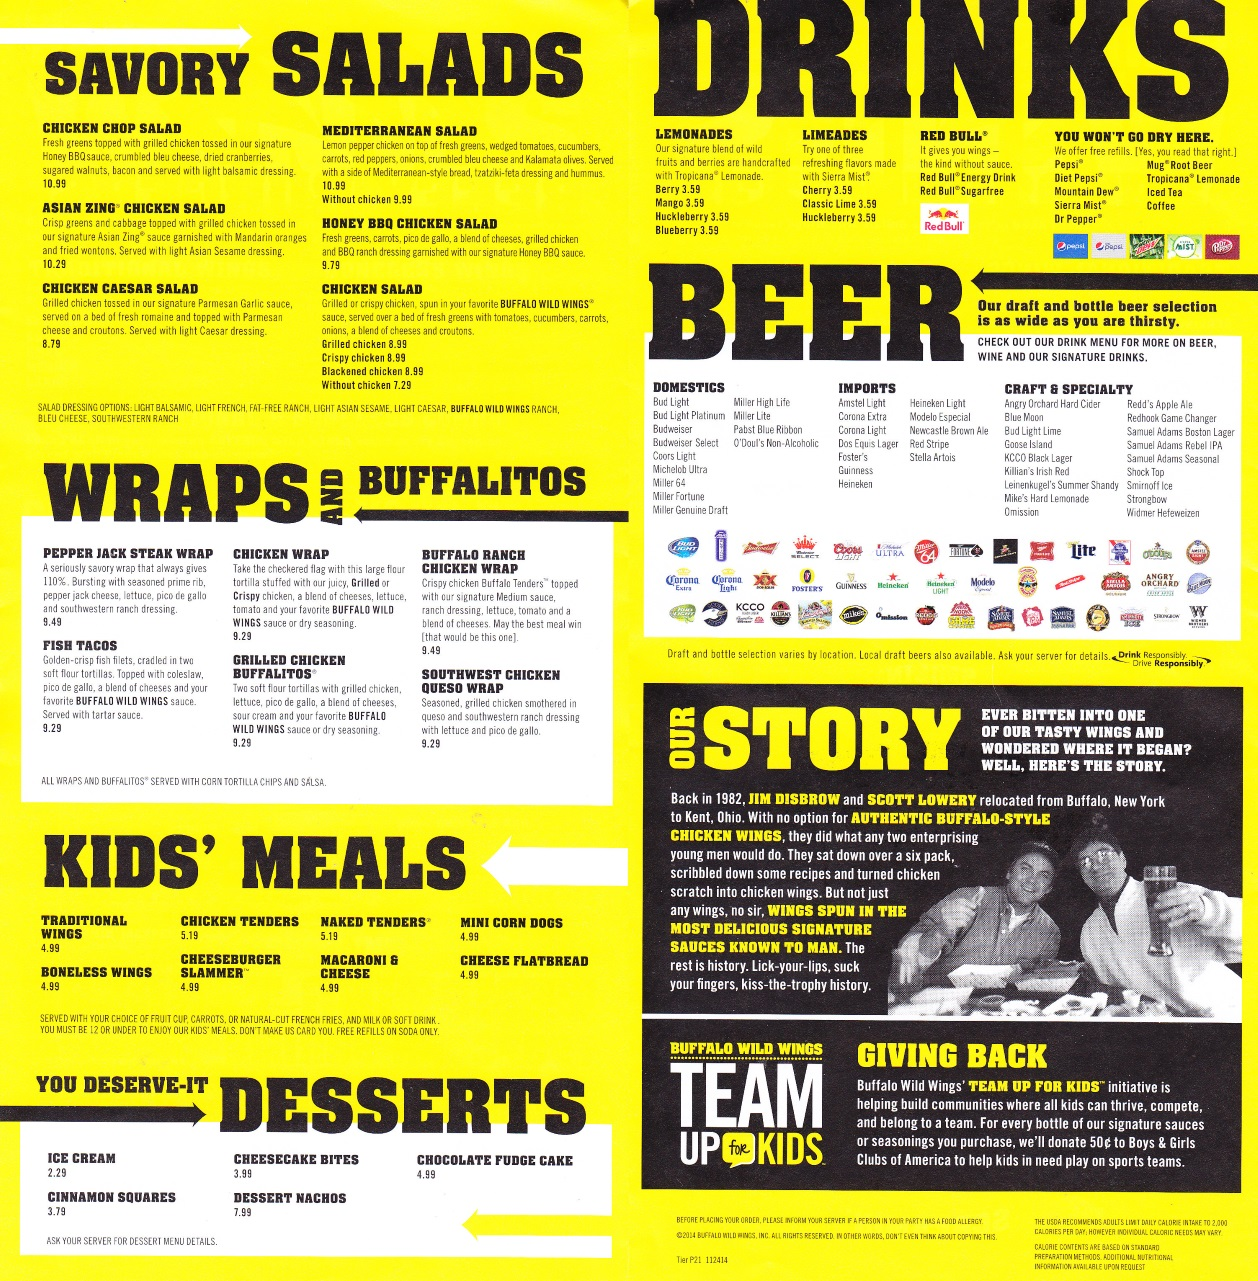 whereisthemenu | buffalo wild wings - middletown, ny 10941